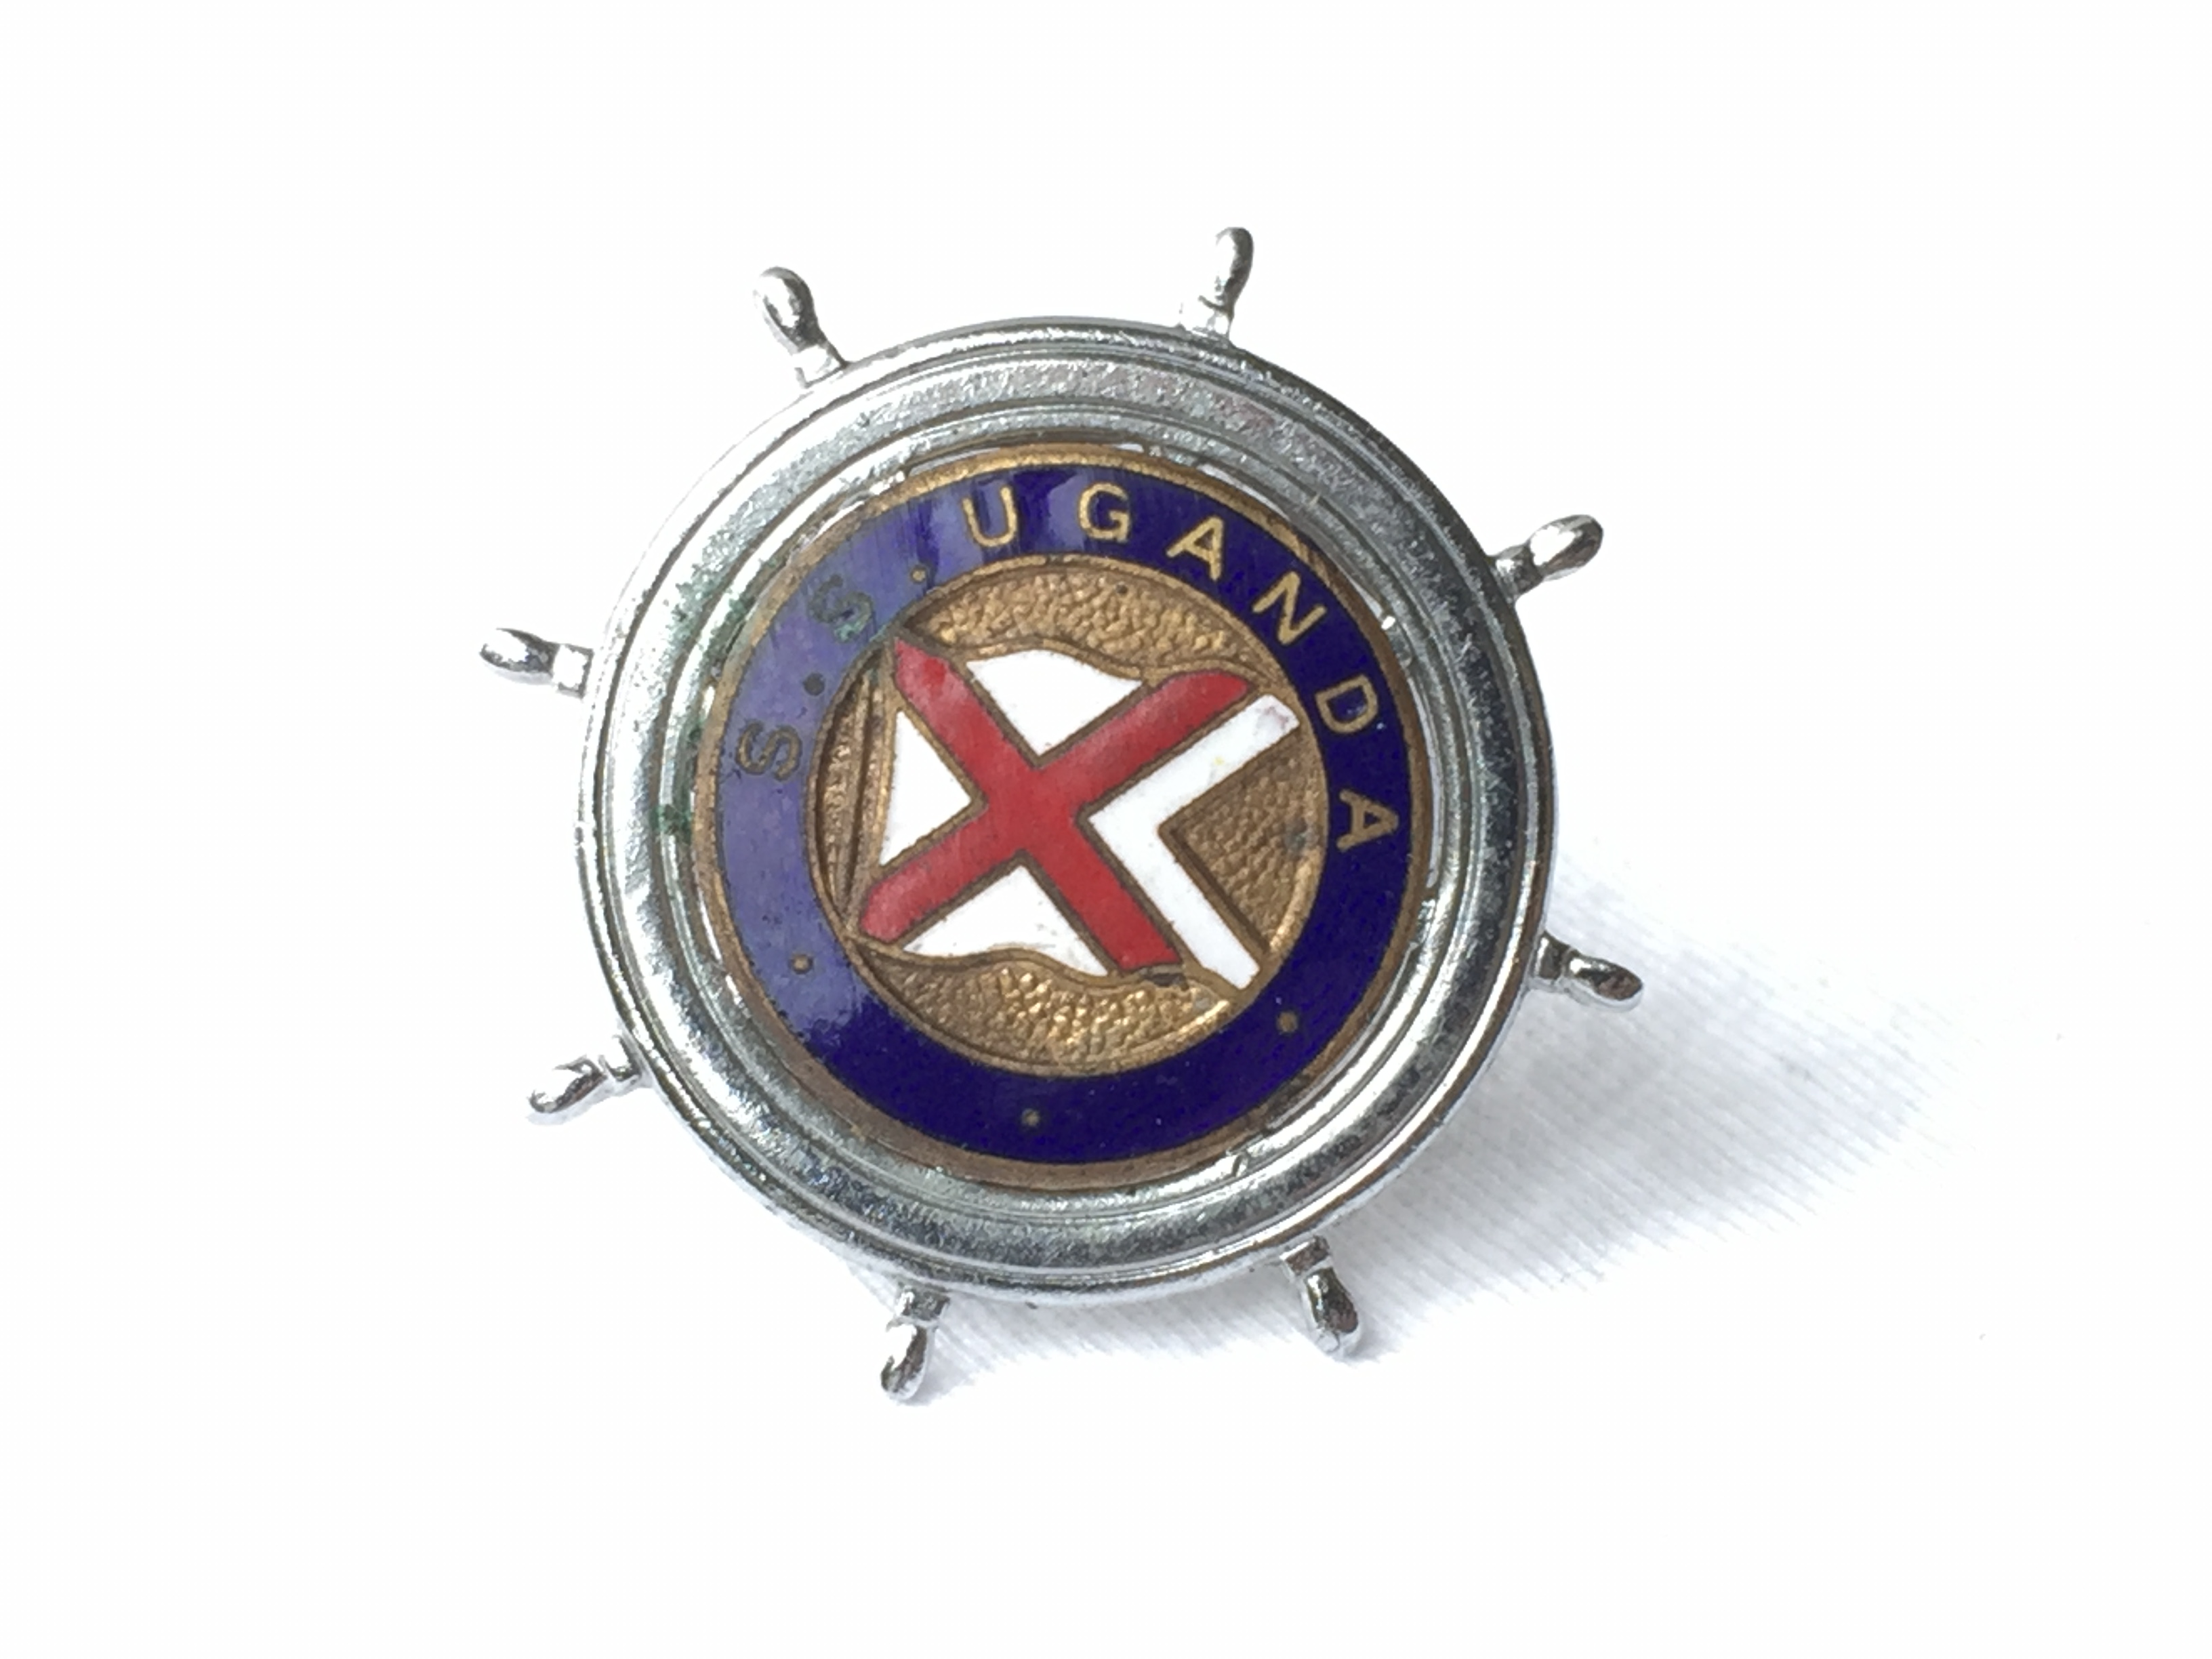 LAPEL PIN BADGE FROM THE BRITISH INDIA STEAM NAVIGATION COMPANY LINE VESSEL THE SS UGANDA 1947-1983